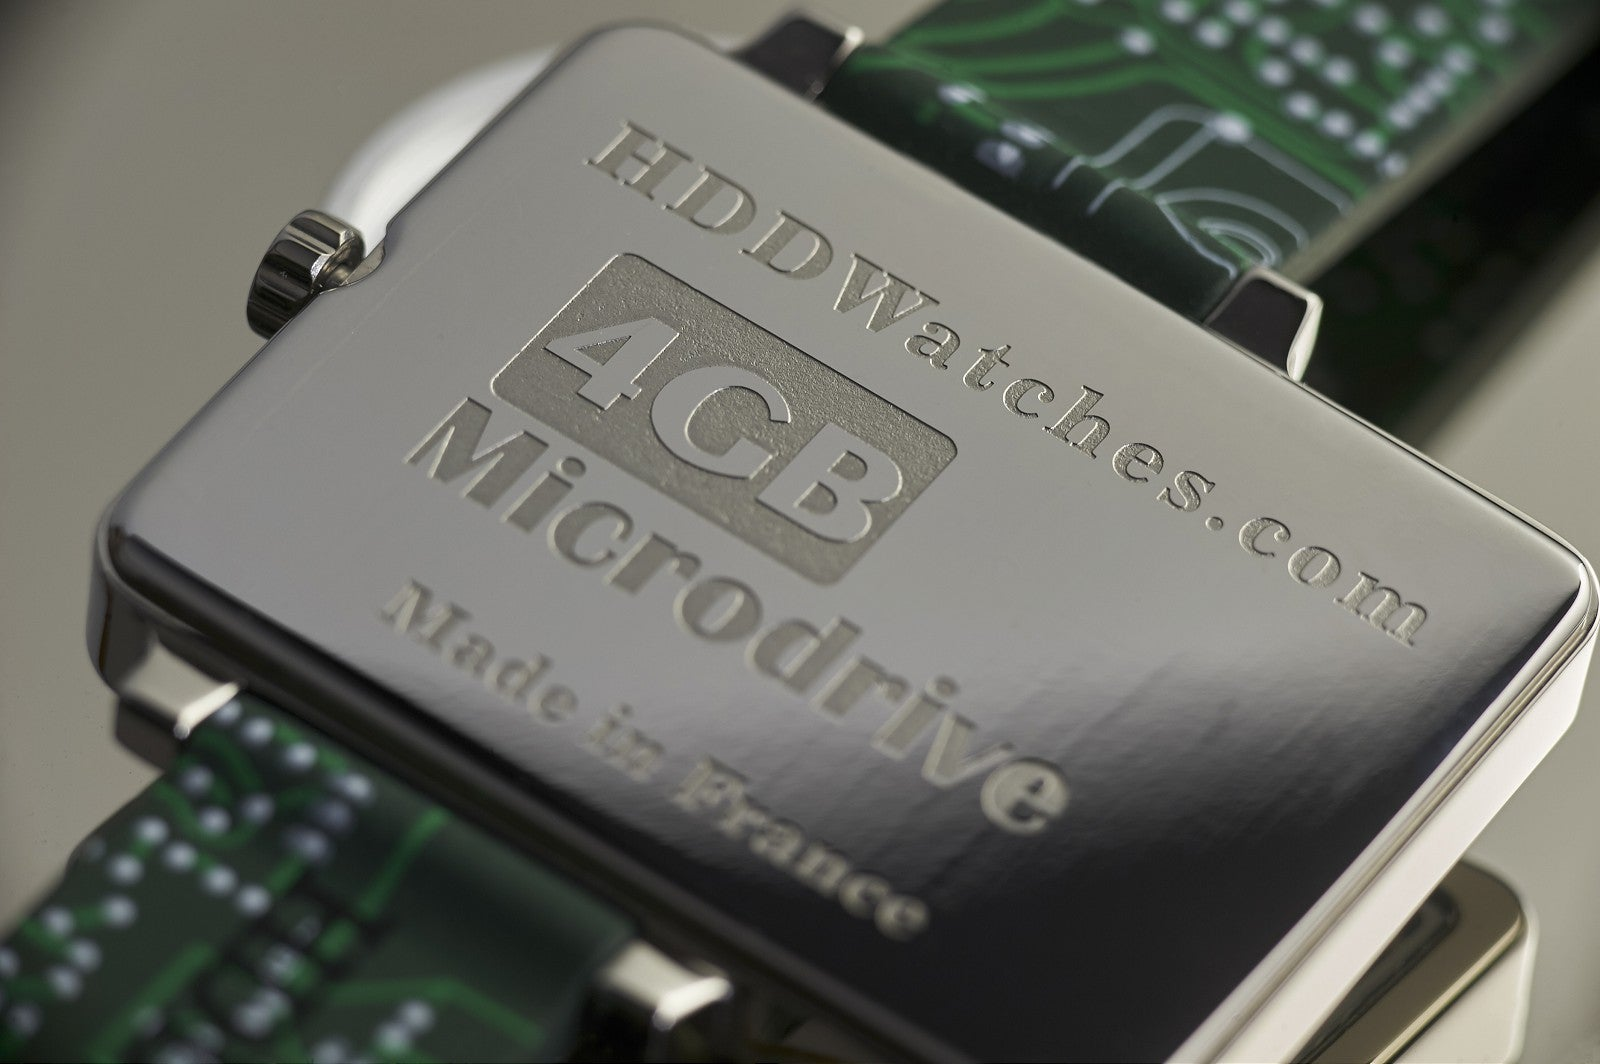 A Tiny Old Hard Drive Makes a Sweet Nerdy Watch